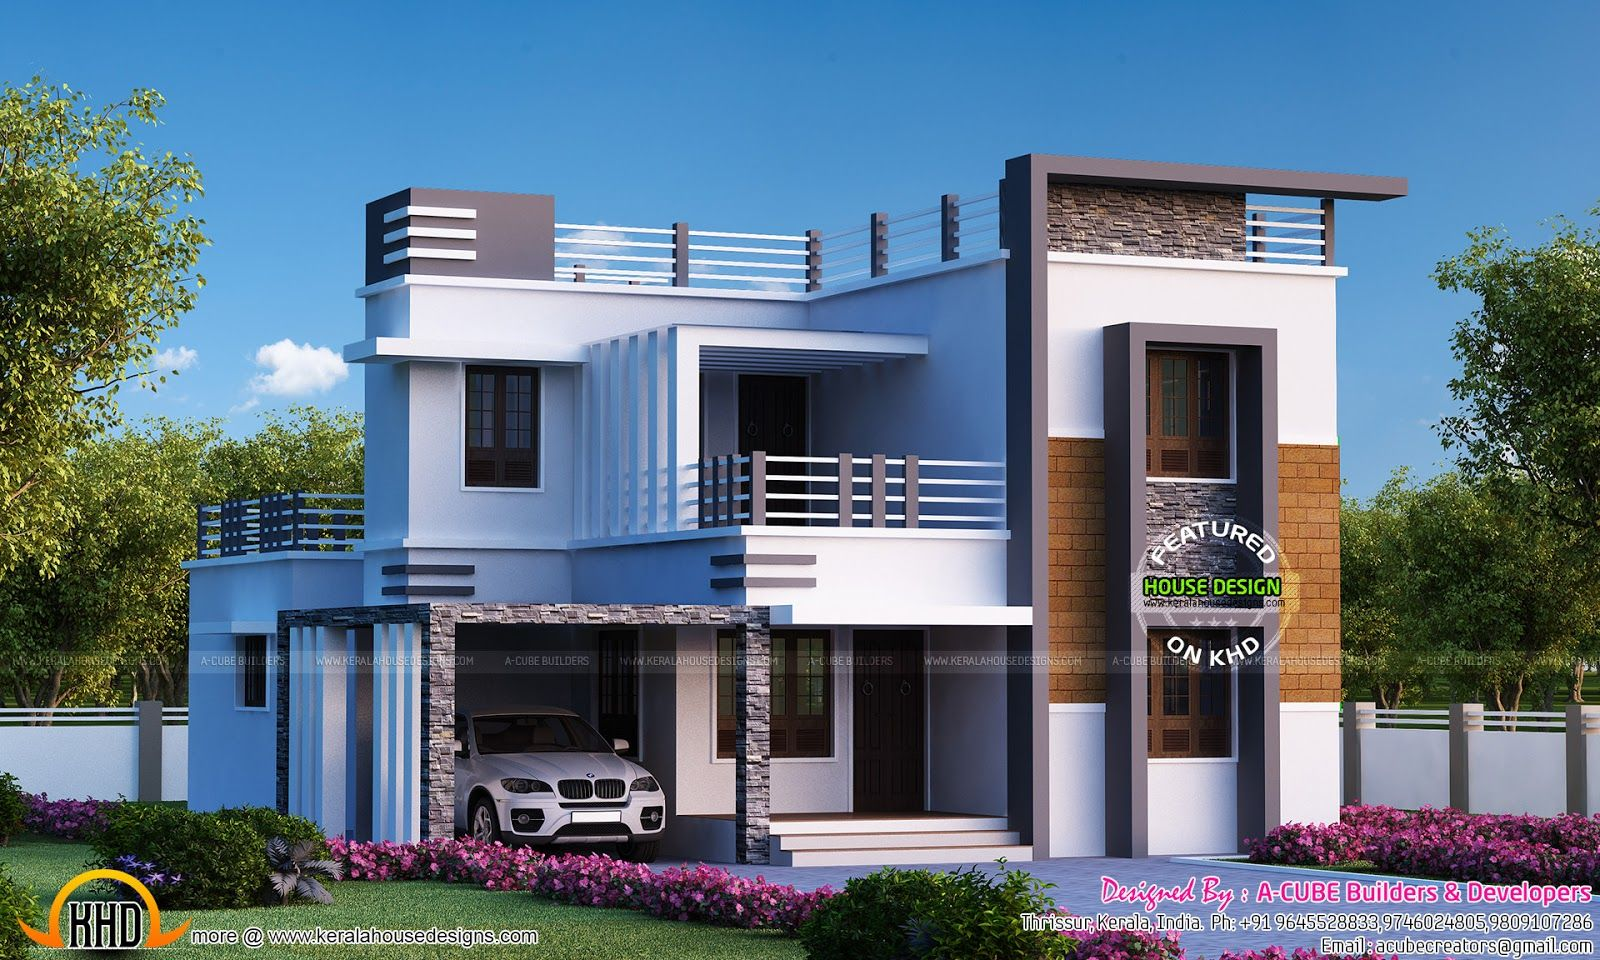 Beau 4 Bedroom Flat Roof Modern Home 2655 Sq Ft